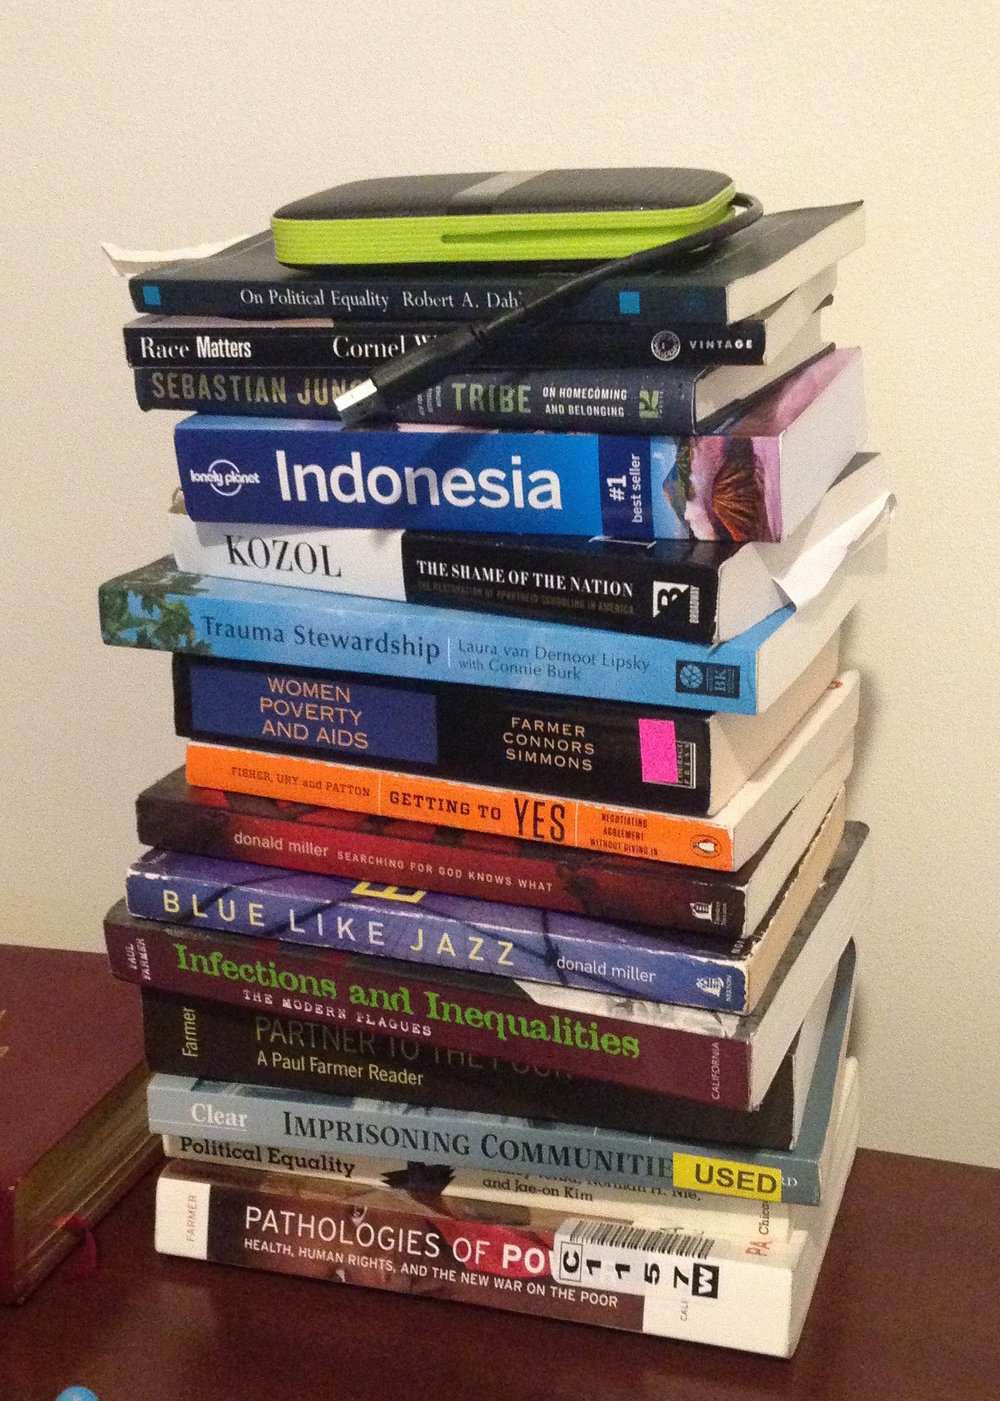 Speaking of piles, here's a pile of SOME of the books that John and I brought back to Thailand - and by us, I mean mostly John!